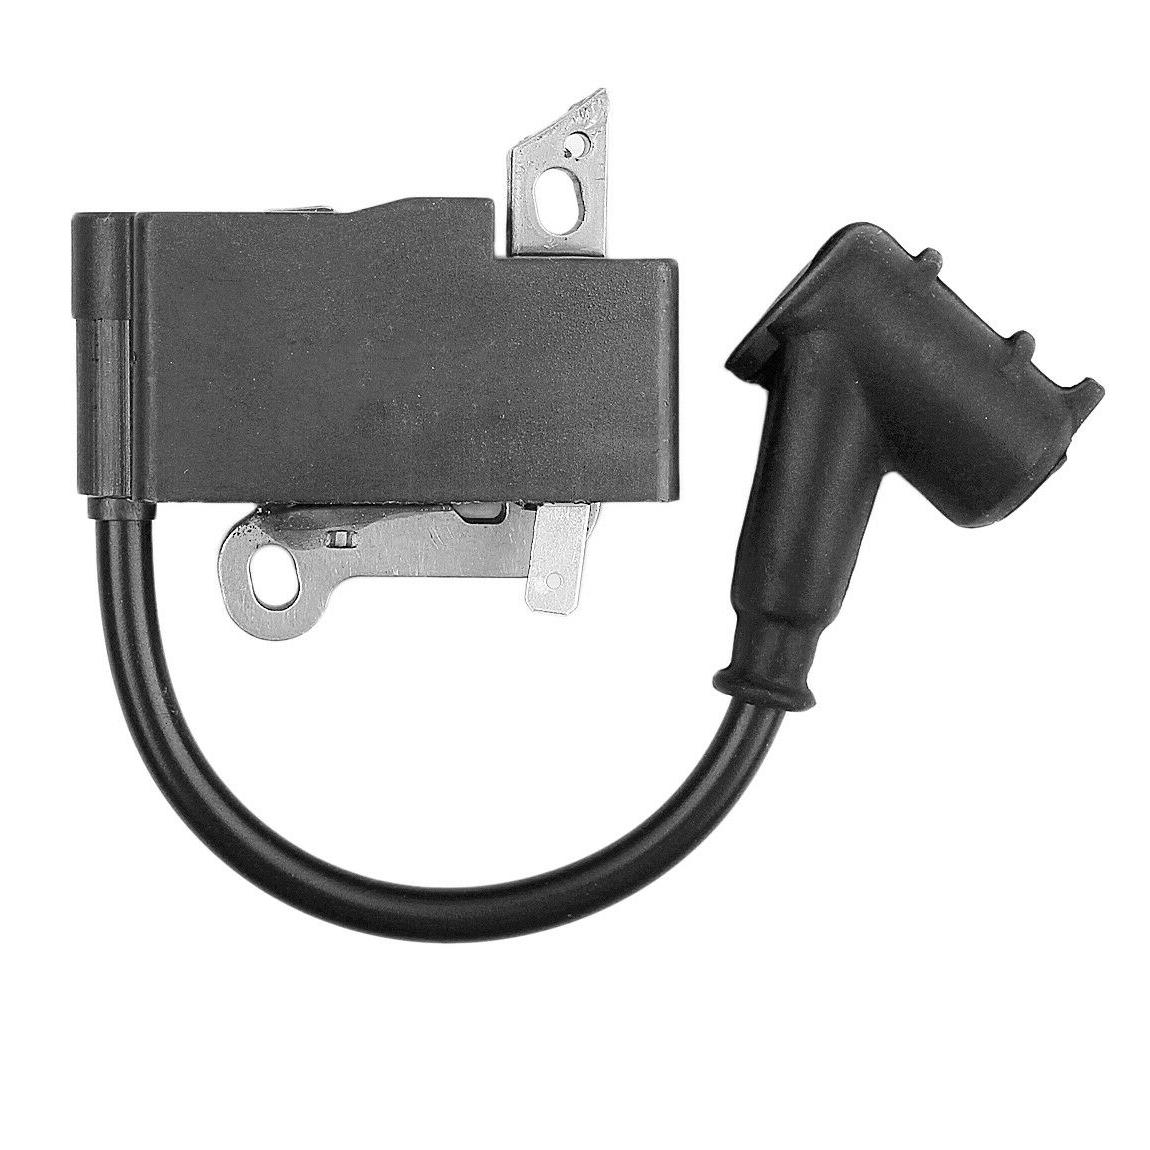 Ignition Coil Module For Stihl MS280 270 280 1133